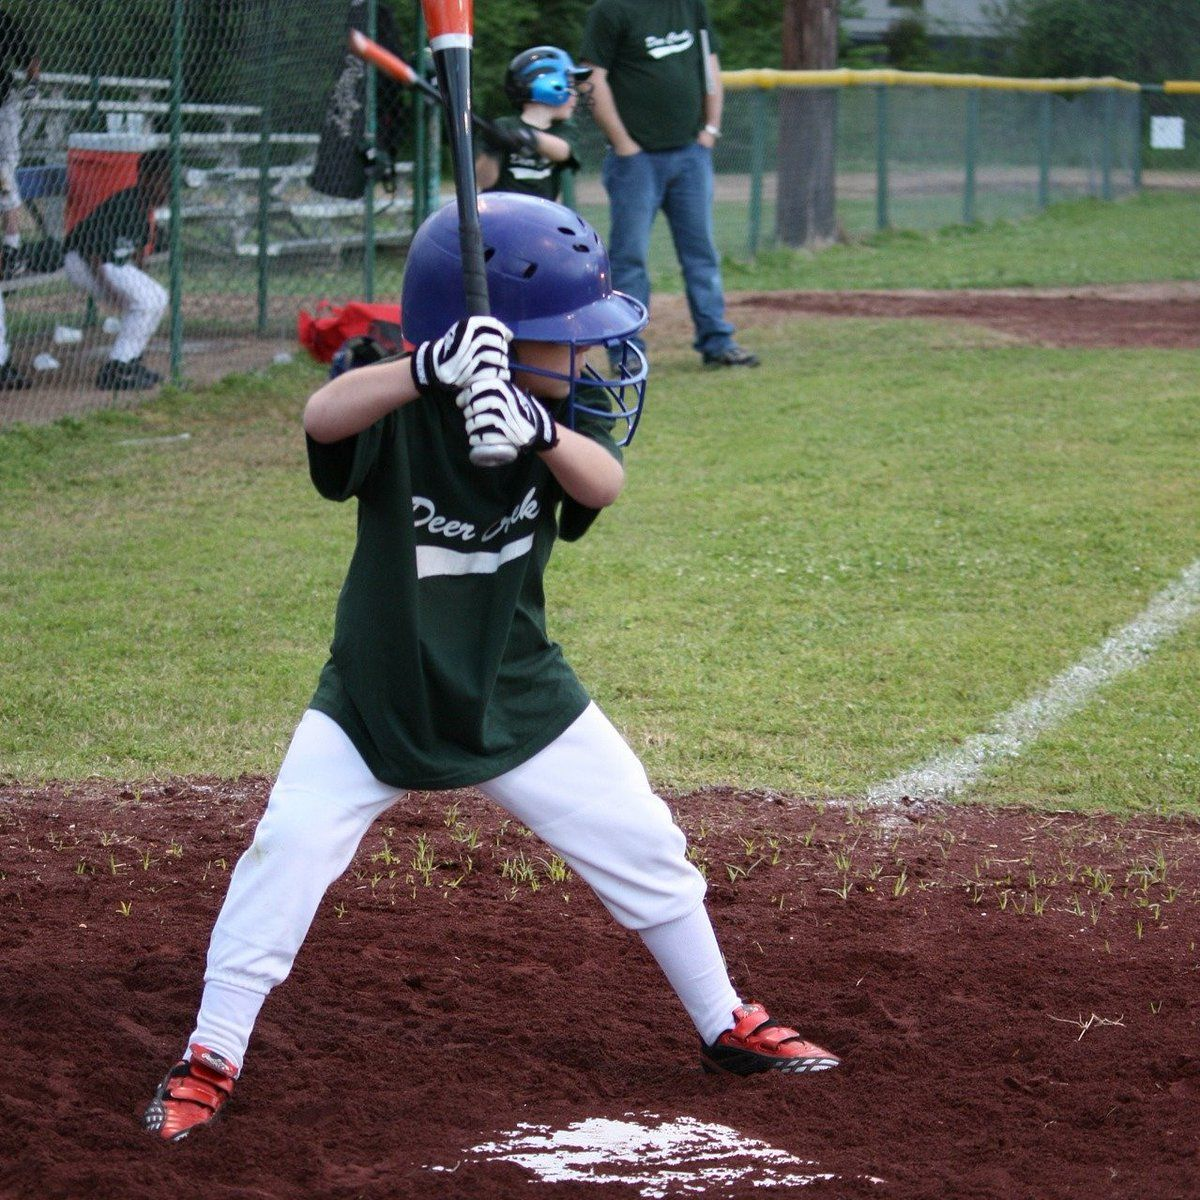 Holiday Inn Express On Twitter In 2020 Baseball Drills Youth Baseball Little League